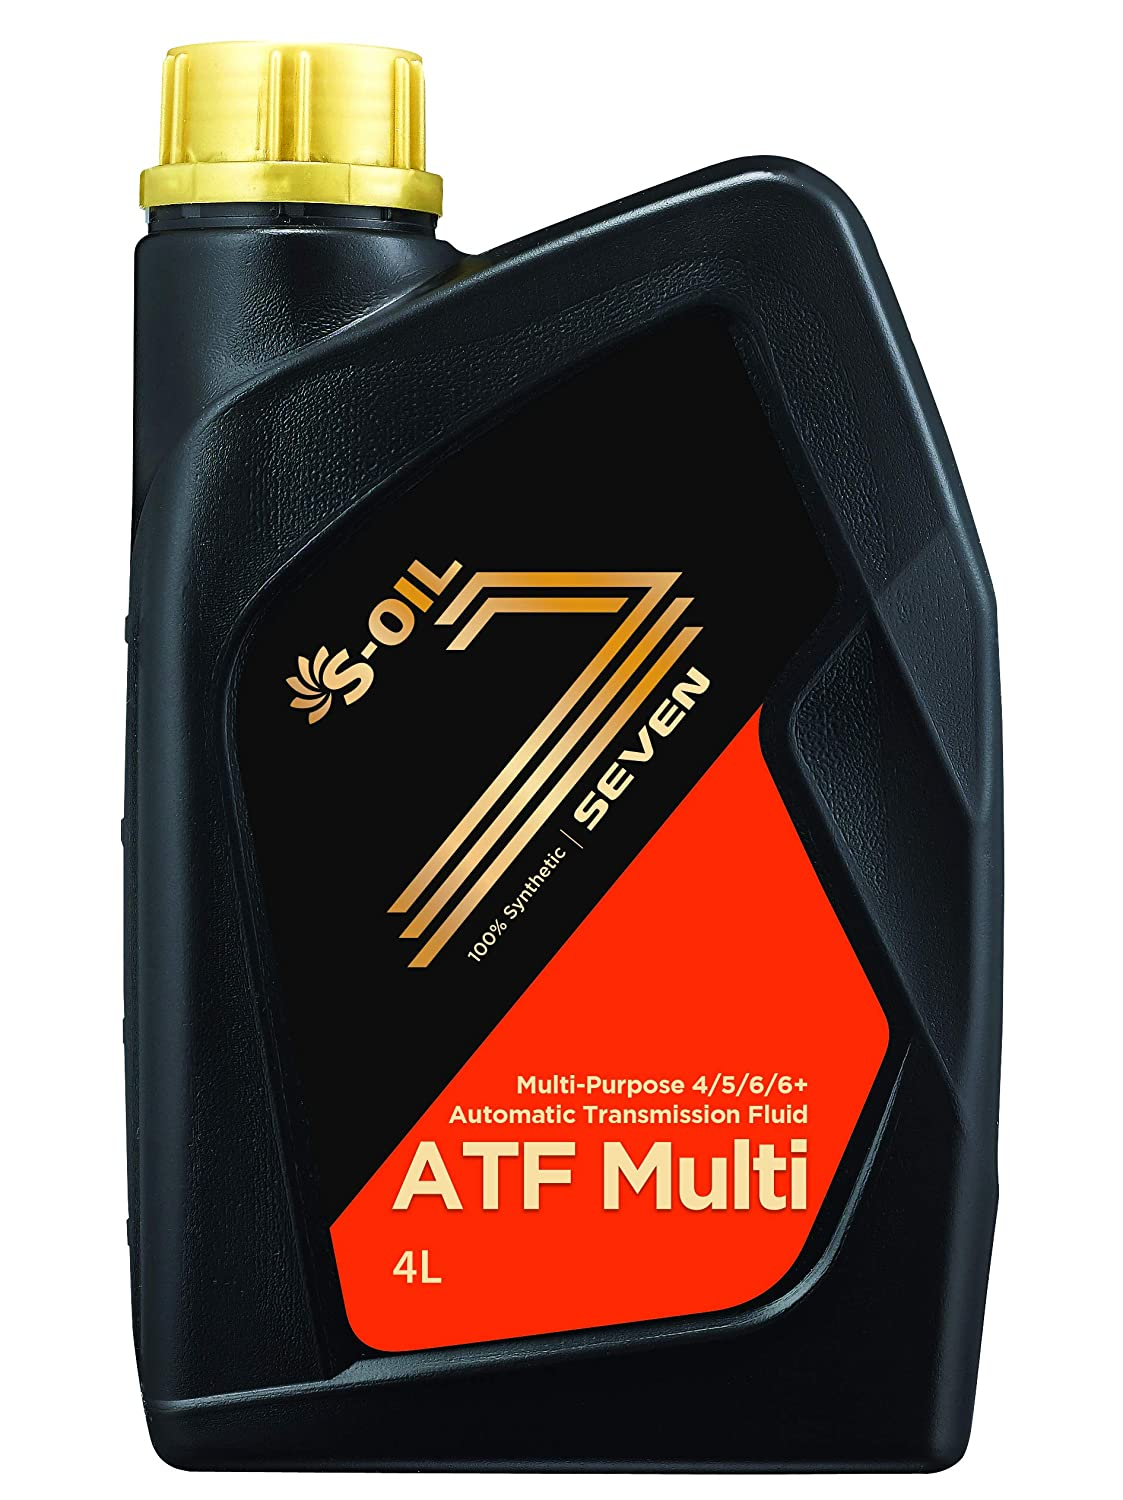 S-Oil Seven 100% Full Synthetic Automatic Transmission Fluid - 4 Liter (4.22 Quarts) Multi Purpose S-OIL TOTAL LUBRICANTS S-OIL 7 ATFMU